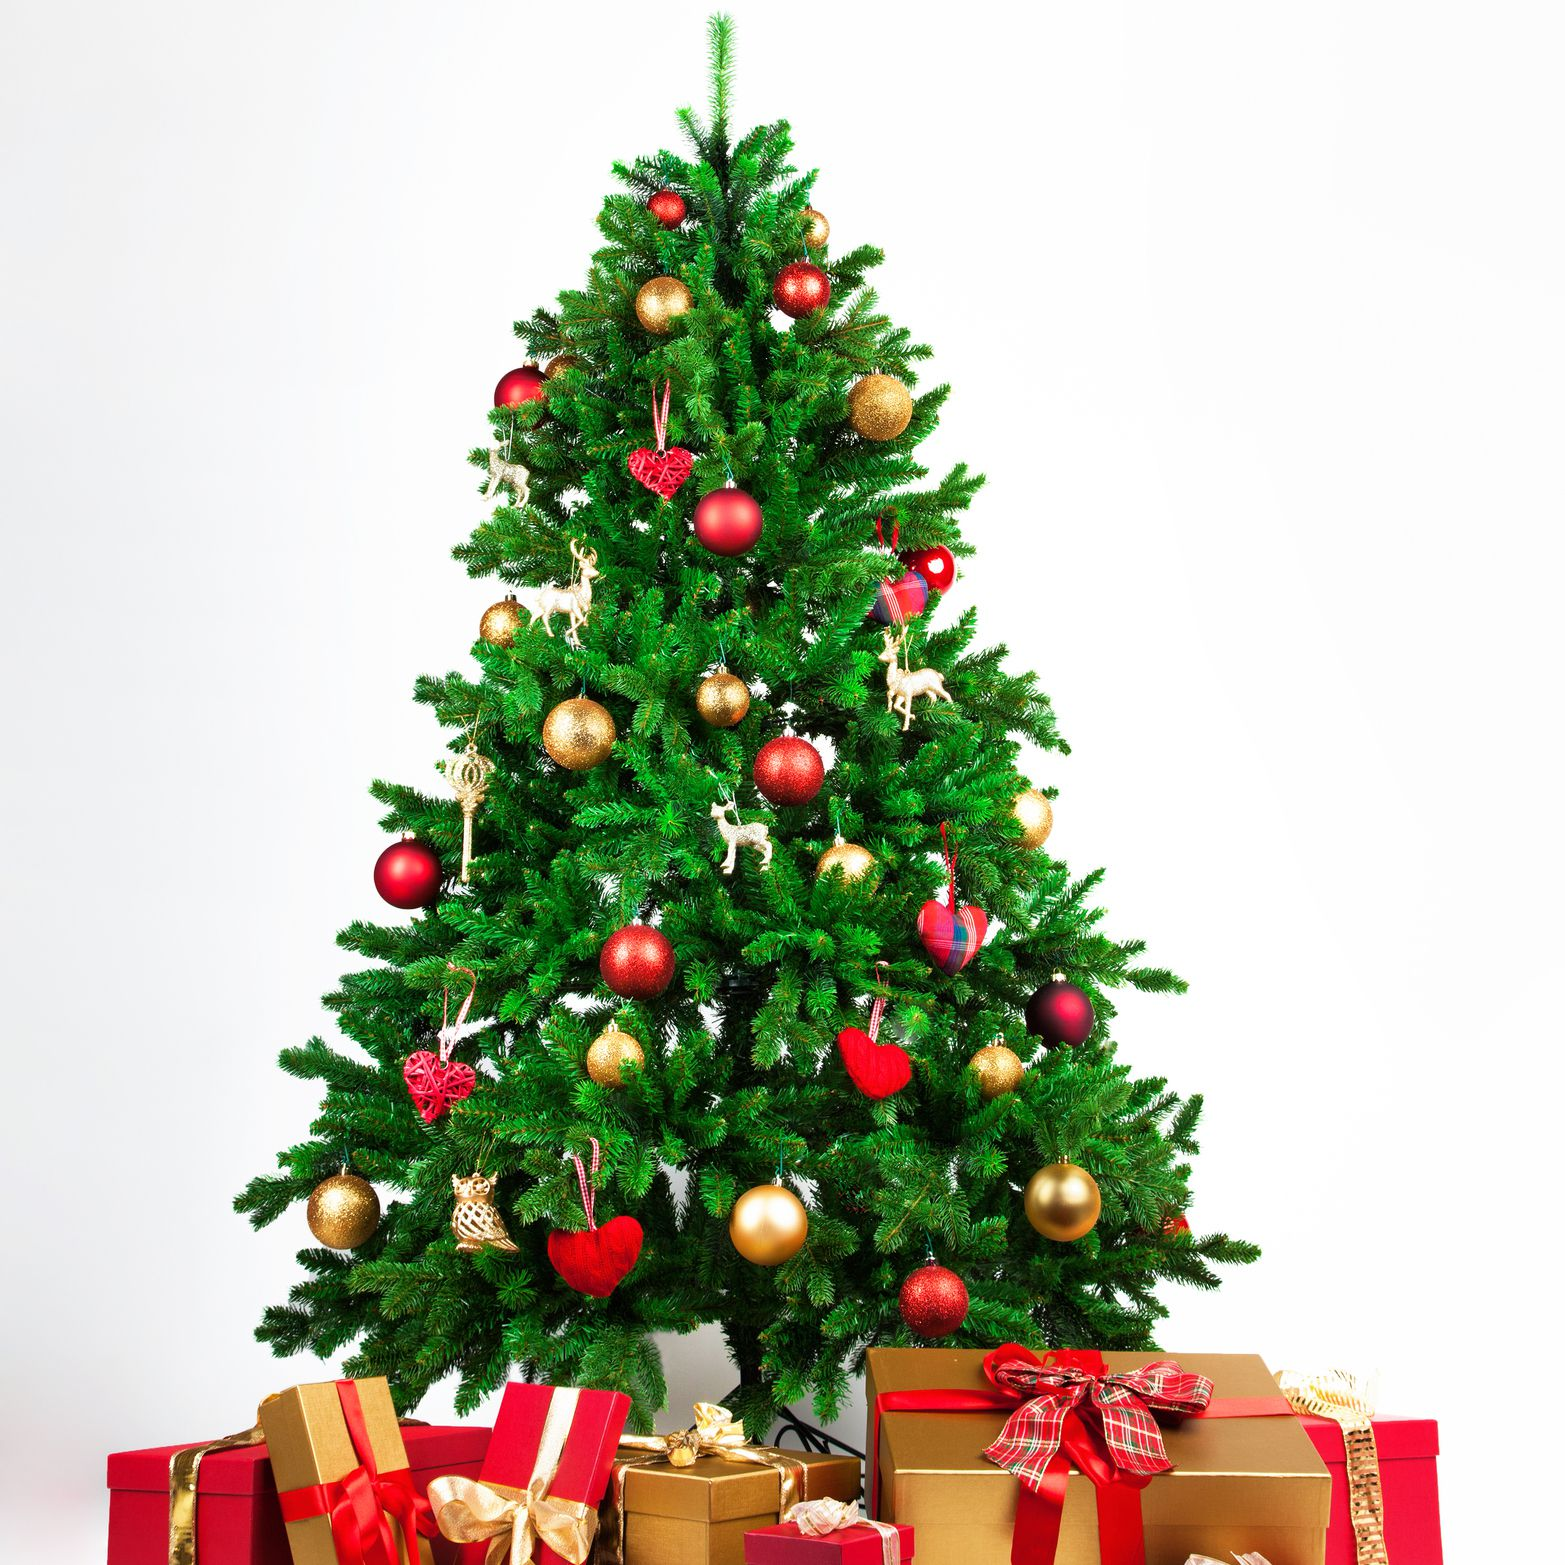 The 7 Best Places To Buy A Christmas Tree In 2021 We are sharing best christmas tree pictures photos collection 20120 with beautiful hd images for whatsapp, facebook, twitter, instagram, and pinterest. best places to buy a christmas tree